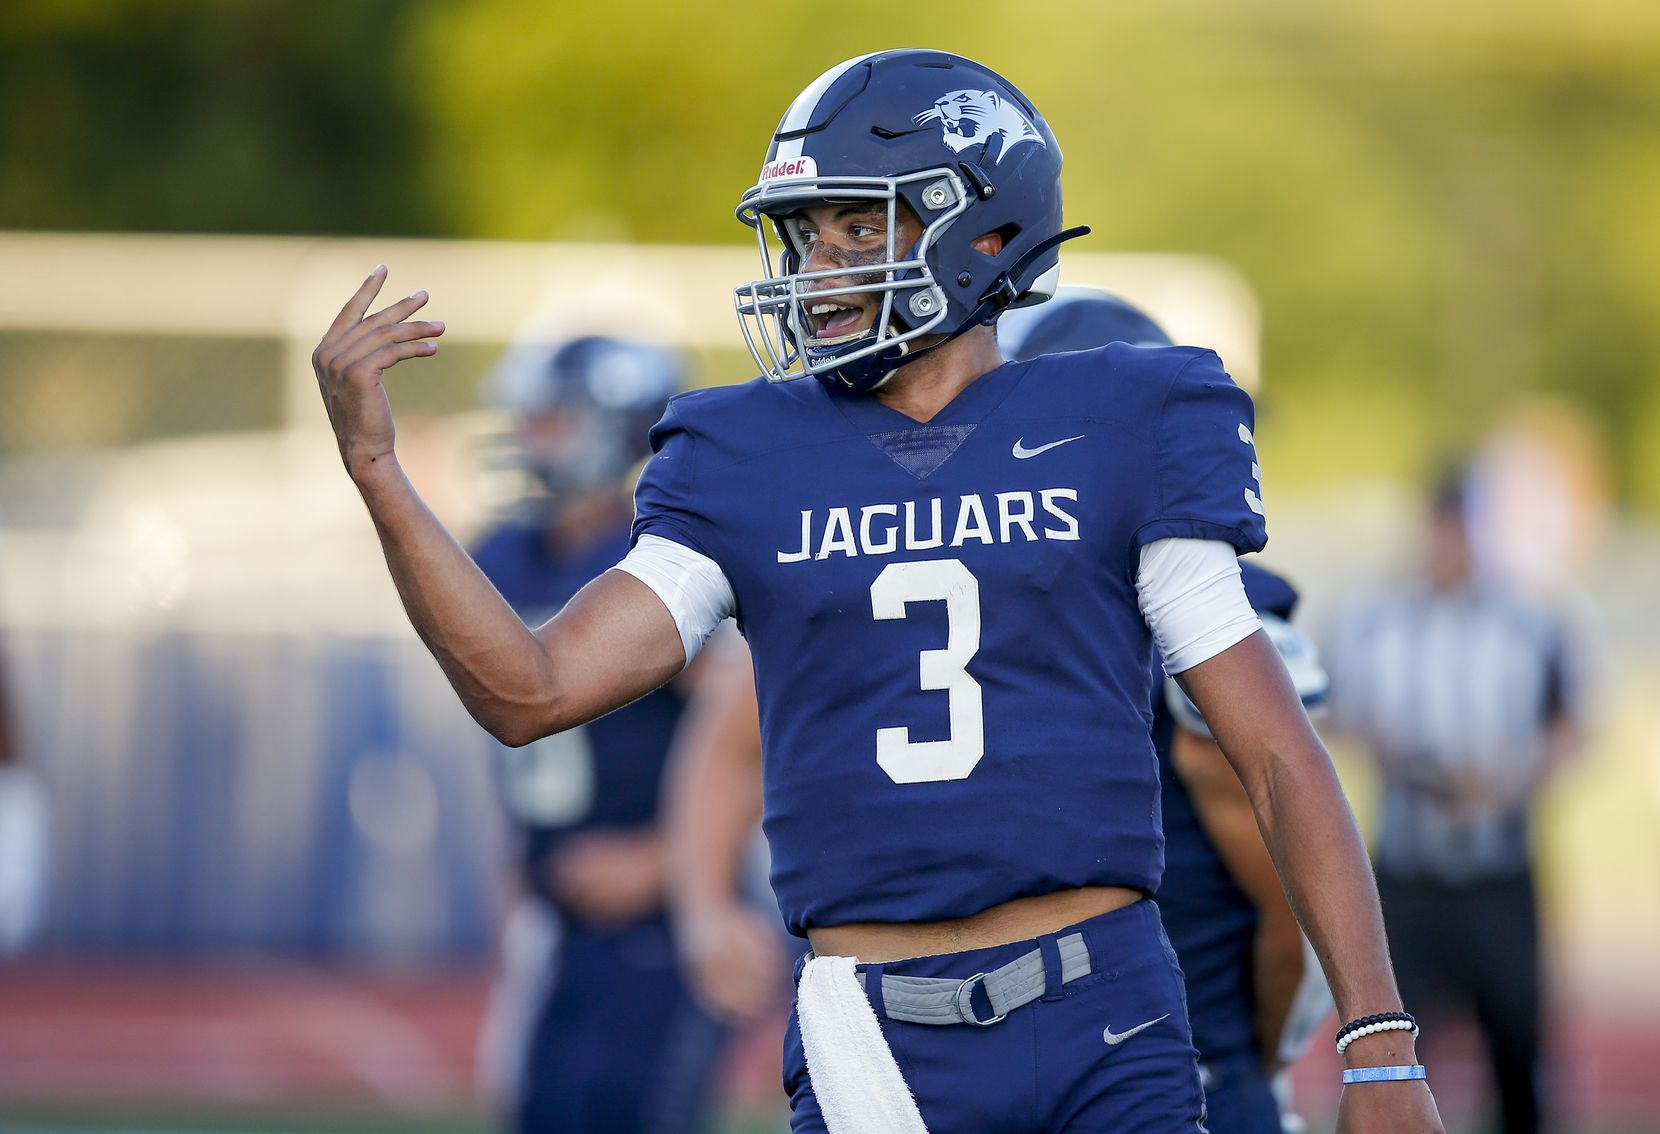 Flower Mound senior quarterback Nick Evers (3) celebrates scoring a touchdown during the first half of a high school football game against Mesquite at Flower Mound High School, Friday, August 27, 2021. (Brandon Wade/Special Contributor)